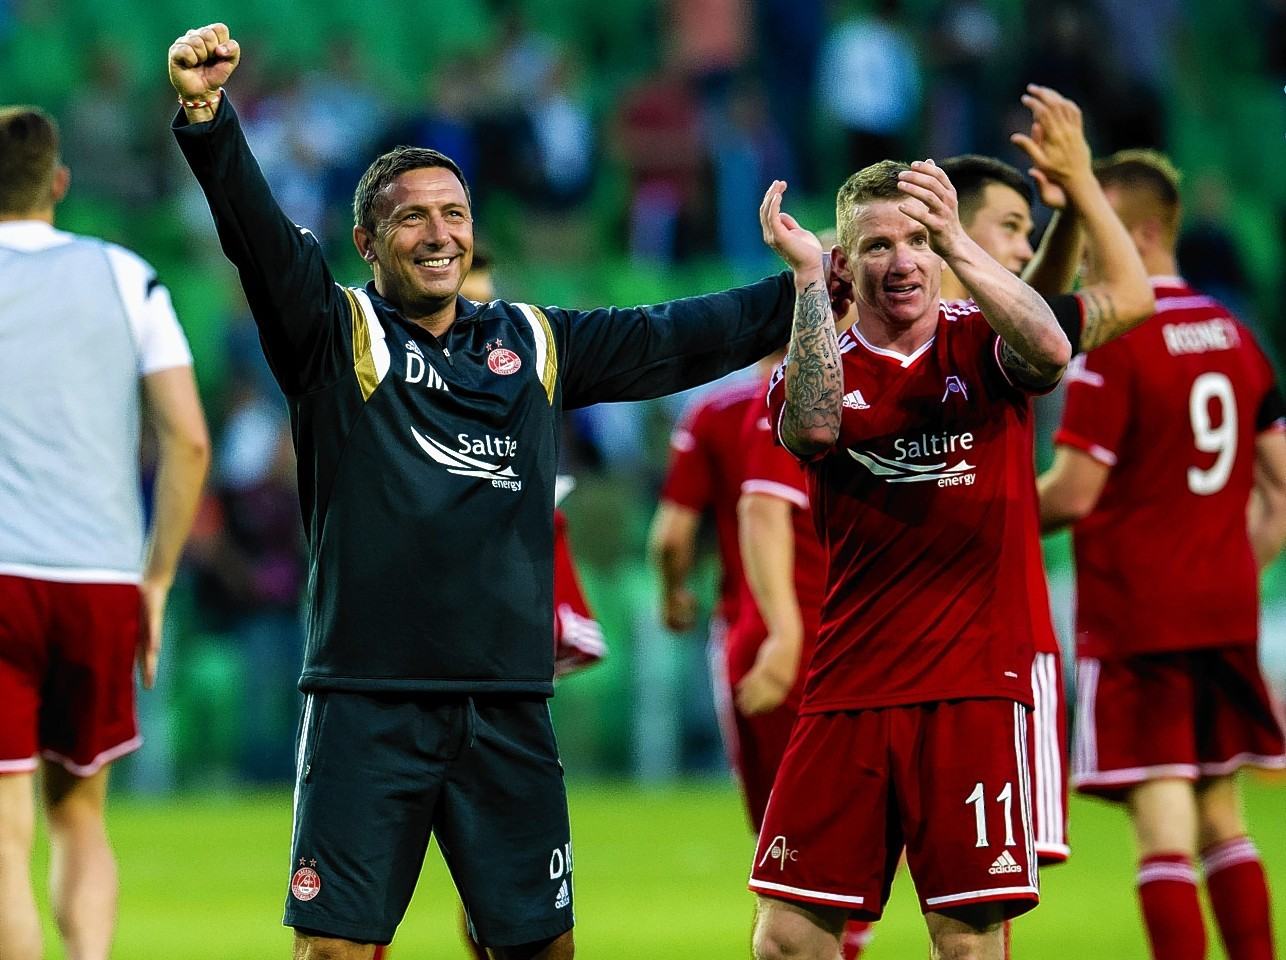 McInnes celebrates guiding the Dons to European success over Groningen last season